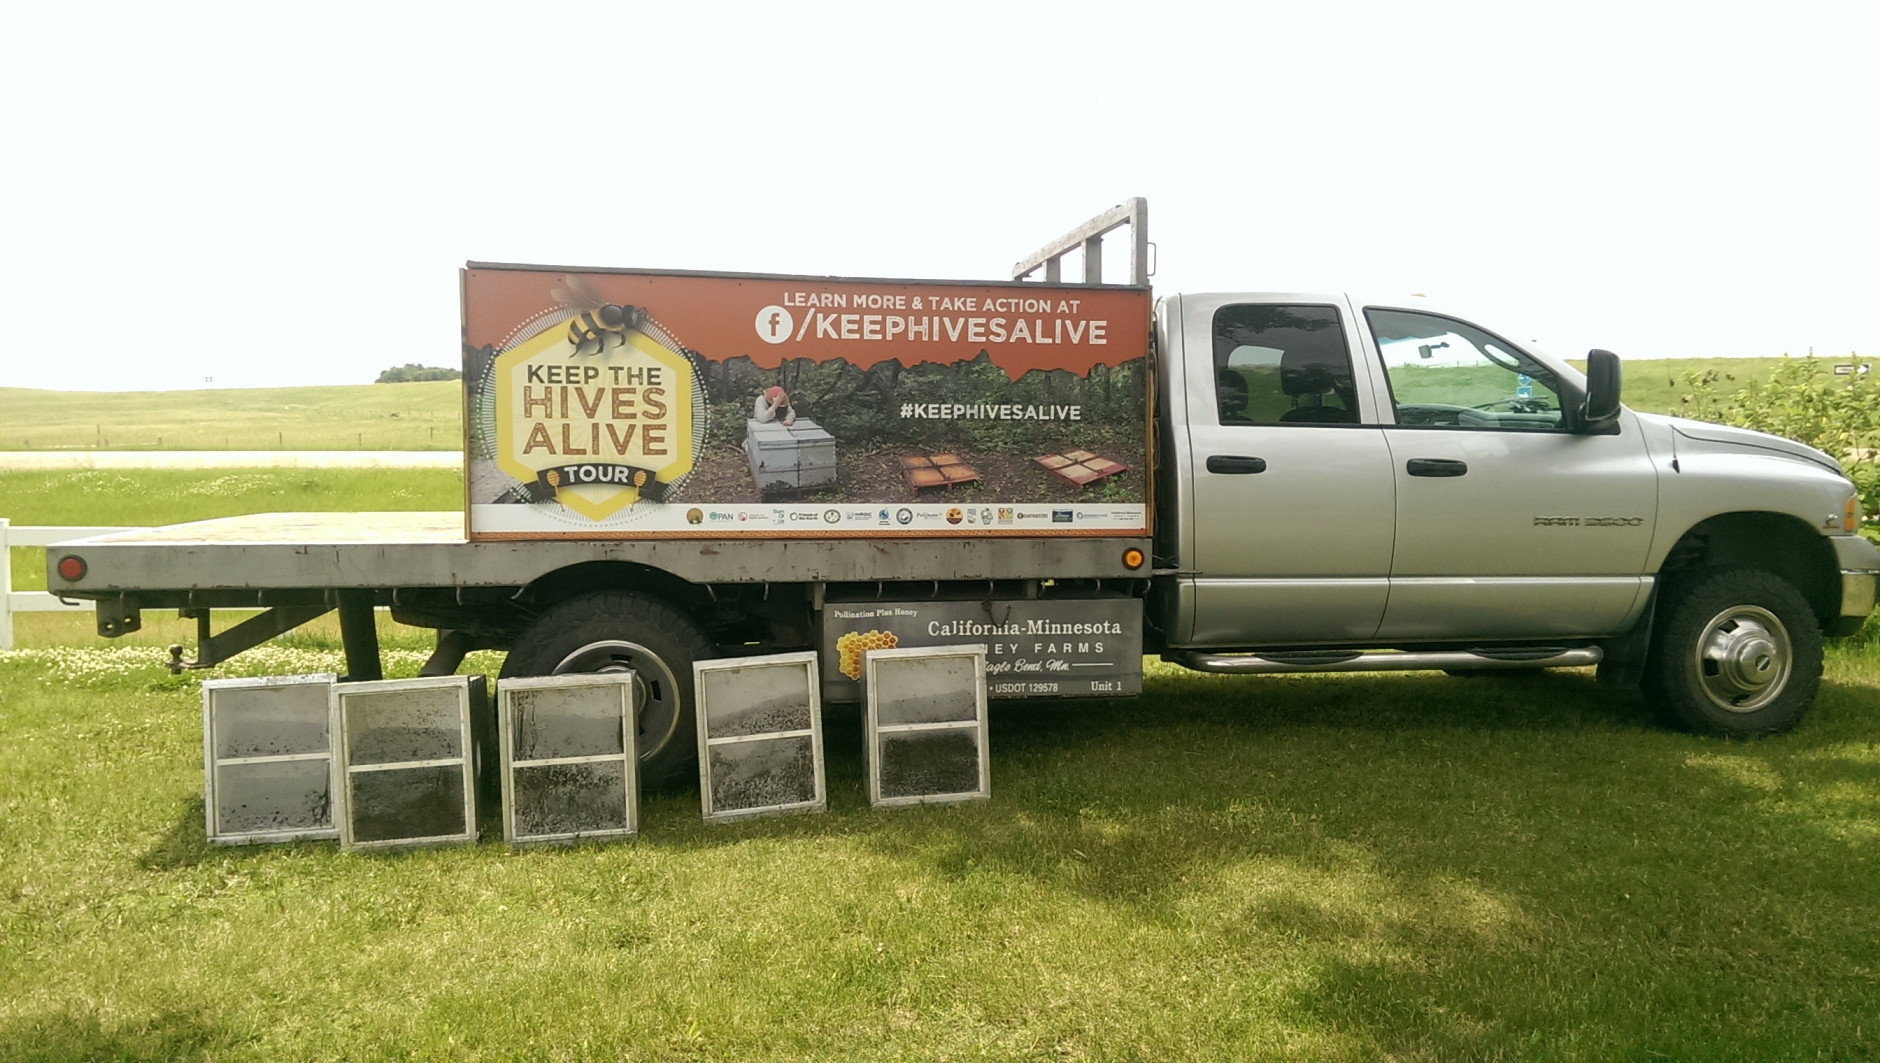 This June 13, 2016 photo provided by Friends of the Earth shows a truck that is carrying more than 2.5 million dead bees in Estelle, S.D. The truck began a tour across the country with a stop in South Dakota Monday, in an effort to raise awareness doubt the collapse of bee colonies and other pollinators in the U.S. (Tiffany Finck-Haynes/Friends of the Earth via AP)